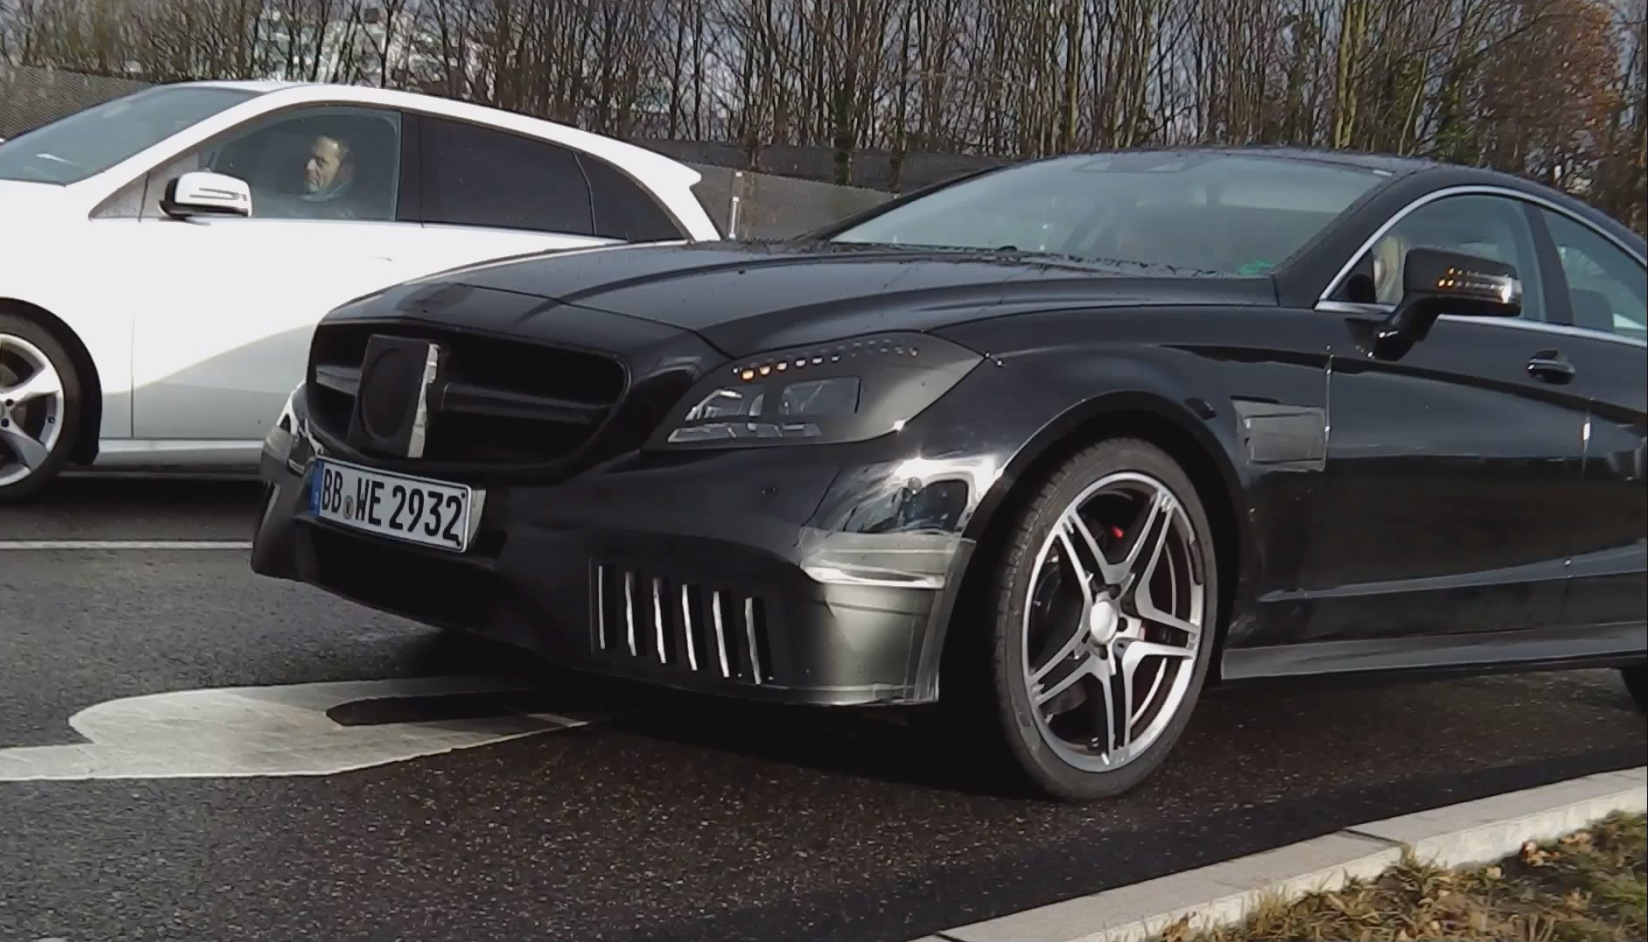 2015 Cls 63 Amg Facelift Caught On Video In Germany